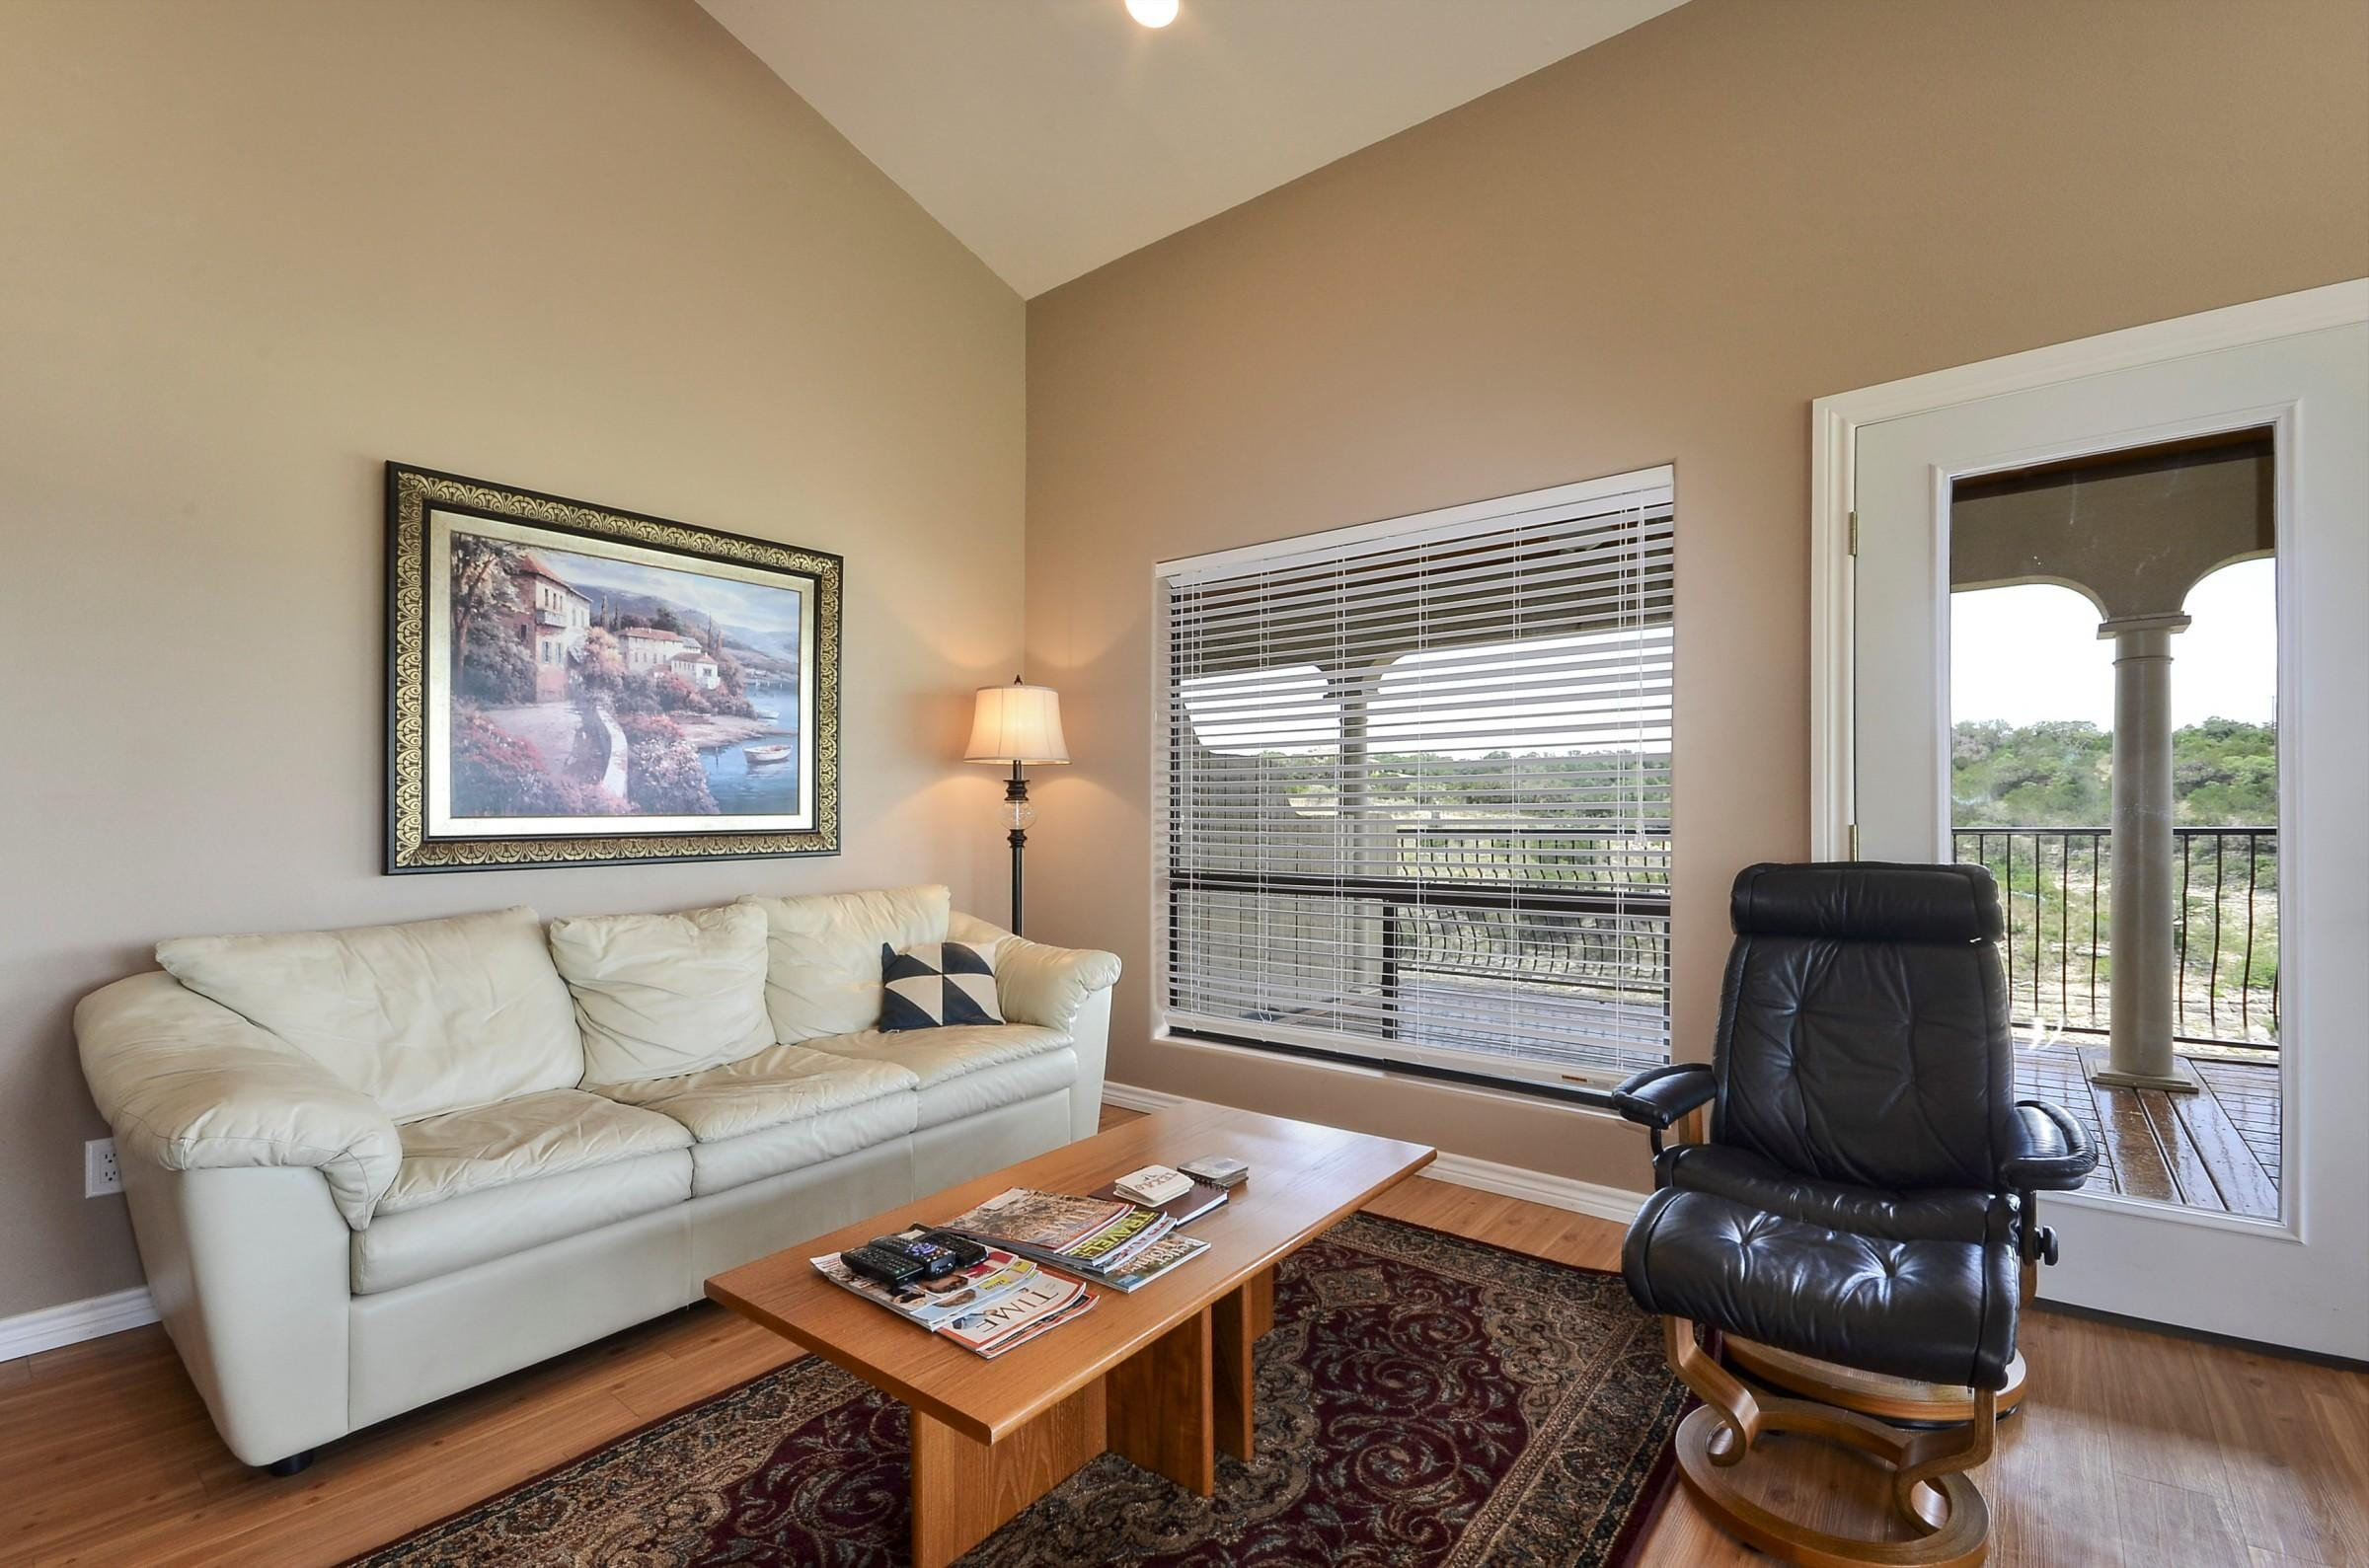 Enjoy the open and spacious living area with vaulted ceilings.